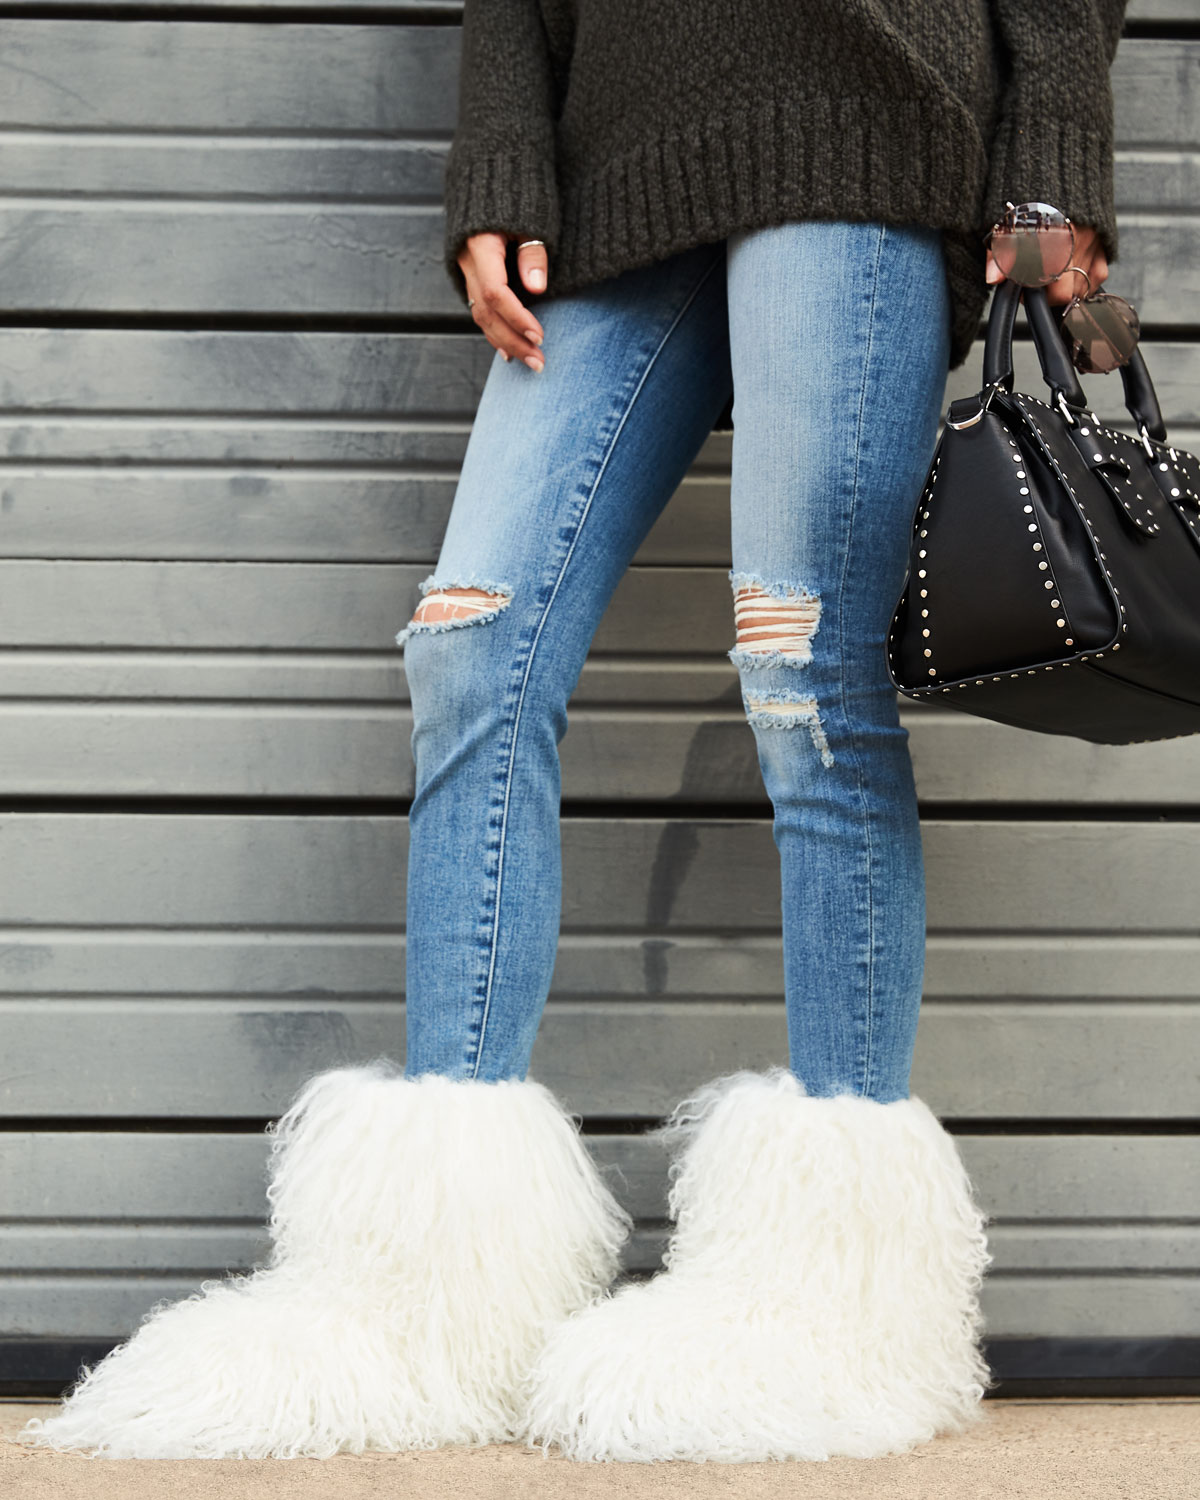 e75ad6c3dbe promo code for ugg fluff momma boots for sale a78d2 1f0c9